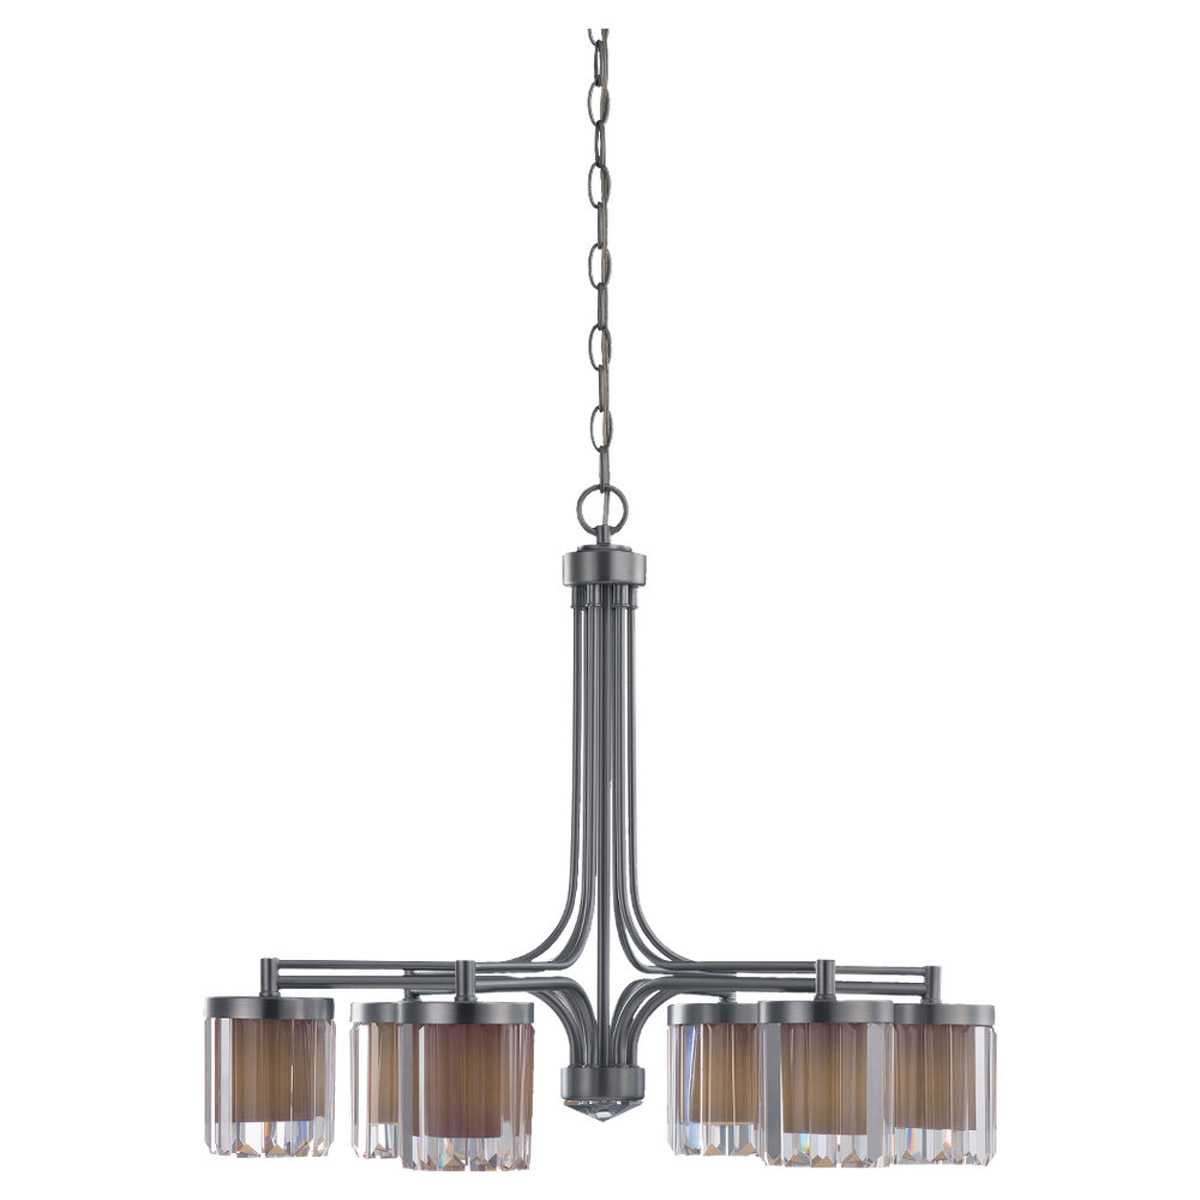 Sea Gull Lighting Nuit Noir Crystal 6 Light Chandelier in Brushed Chrome 31692-863